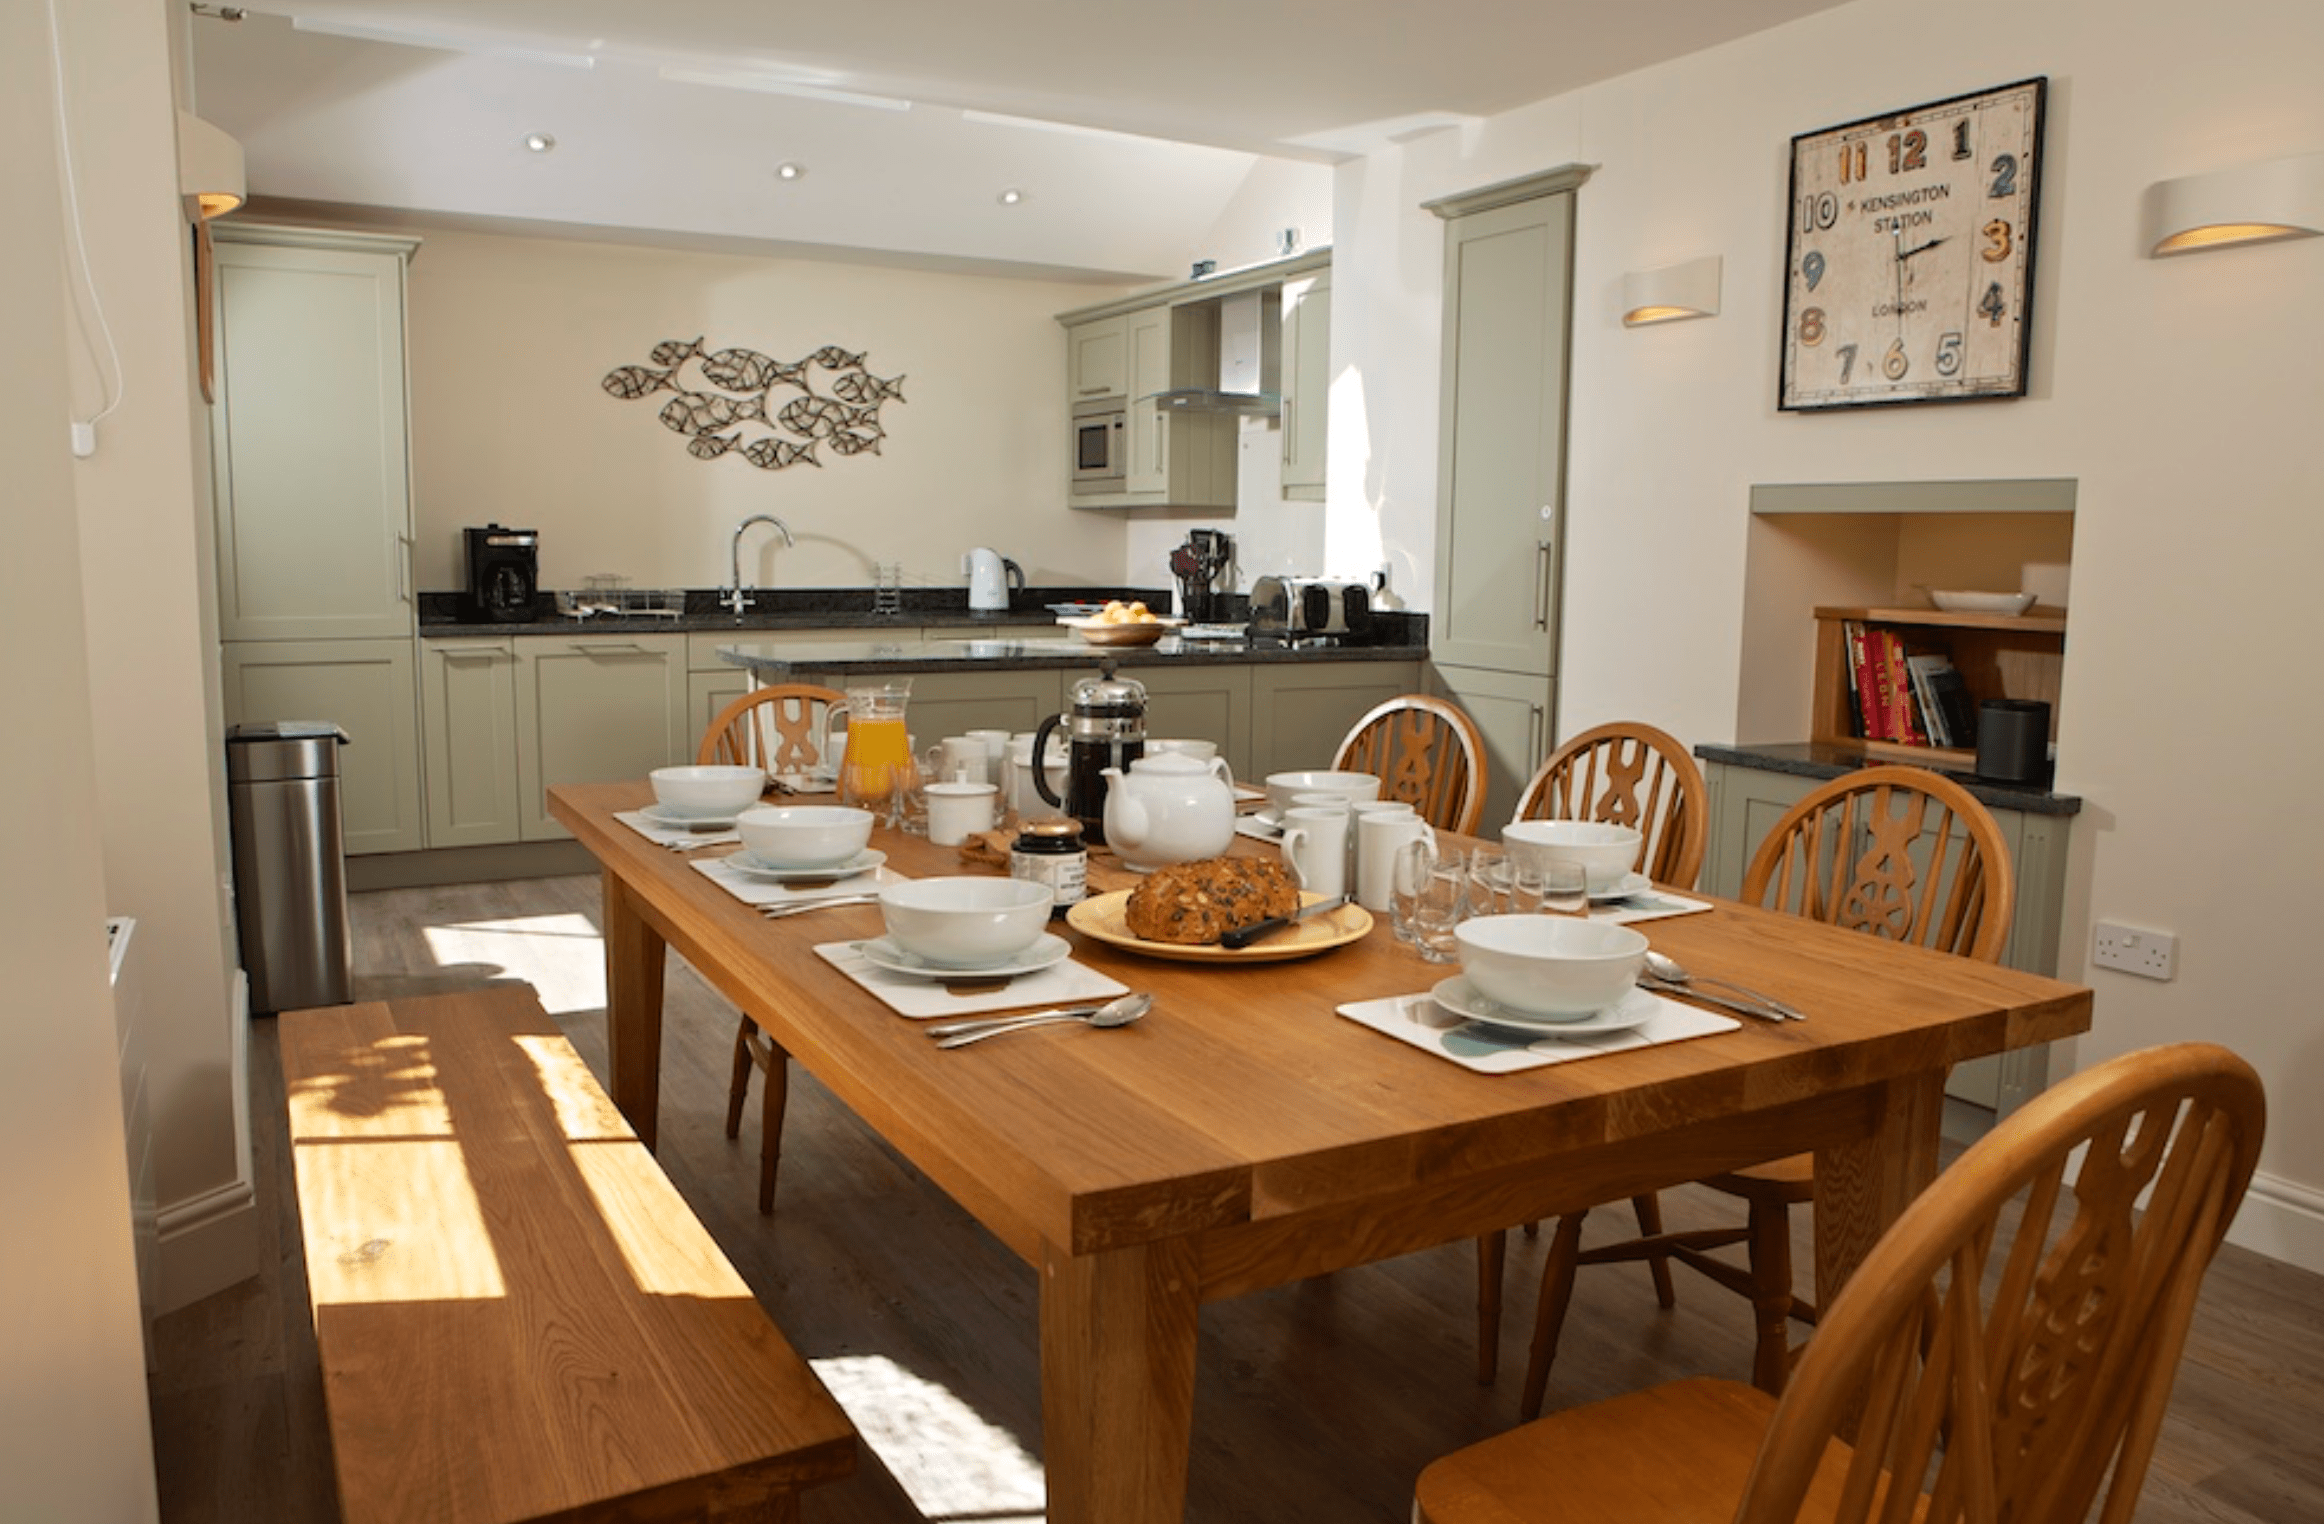 An open plan kitchen and dining room